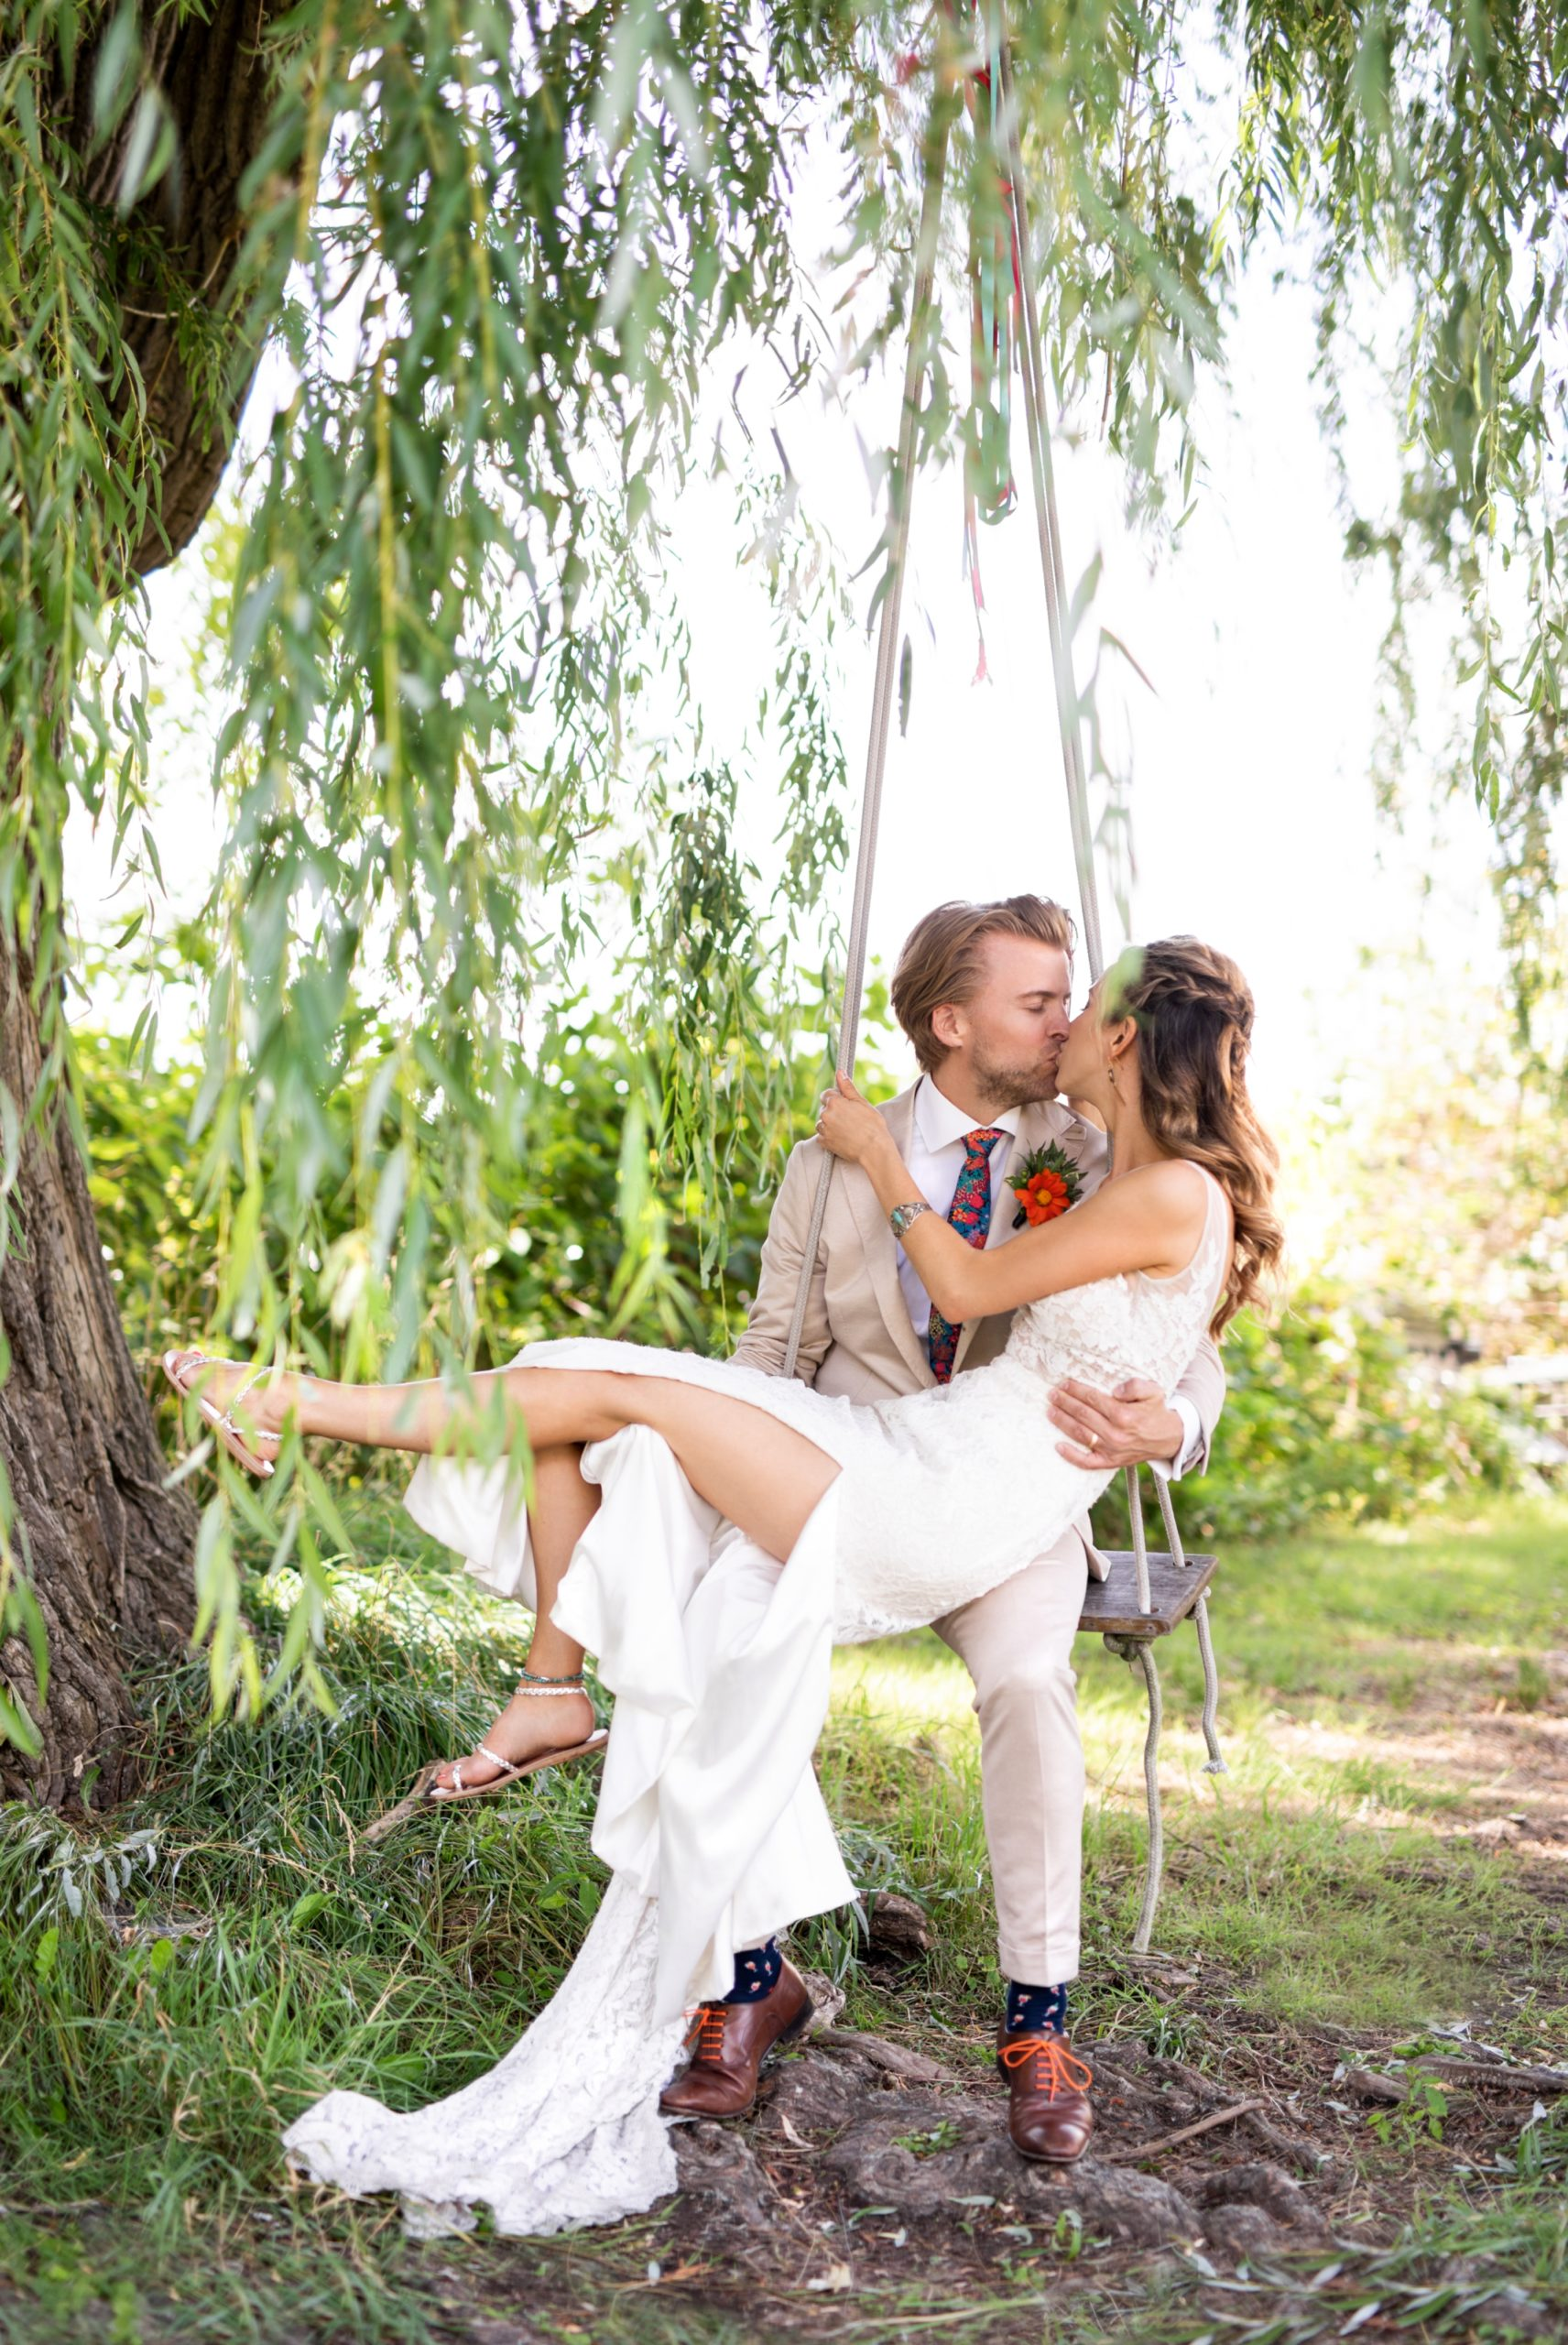 Bride Groom Swing Toronto Ward's Island Summer Wedding Zsuzsi Pal Photography